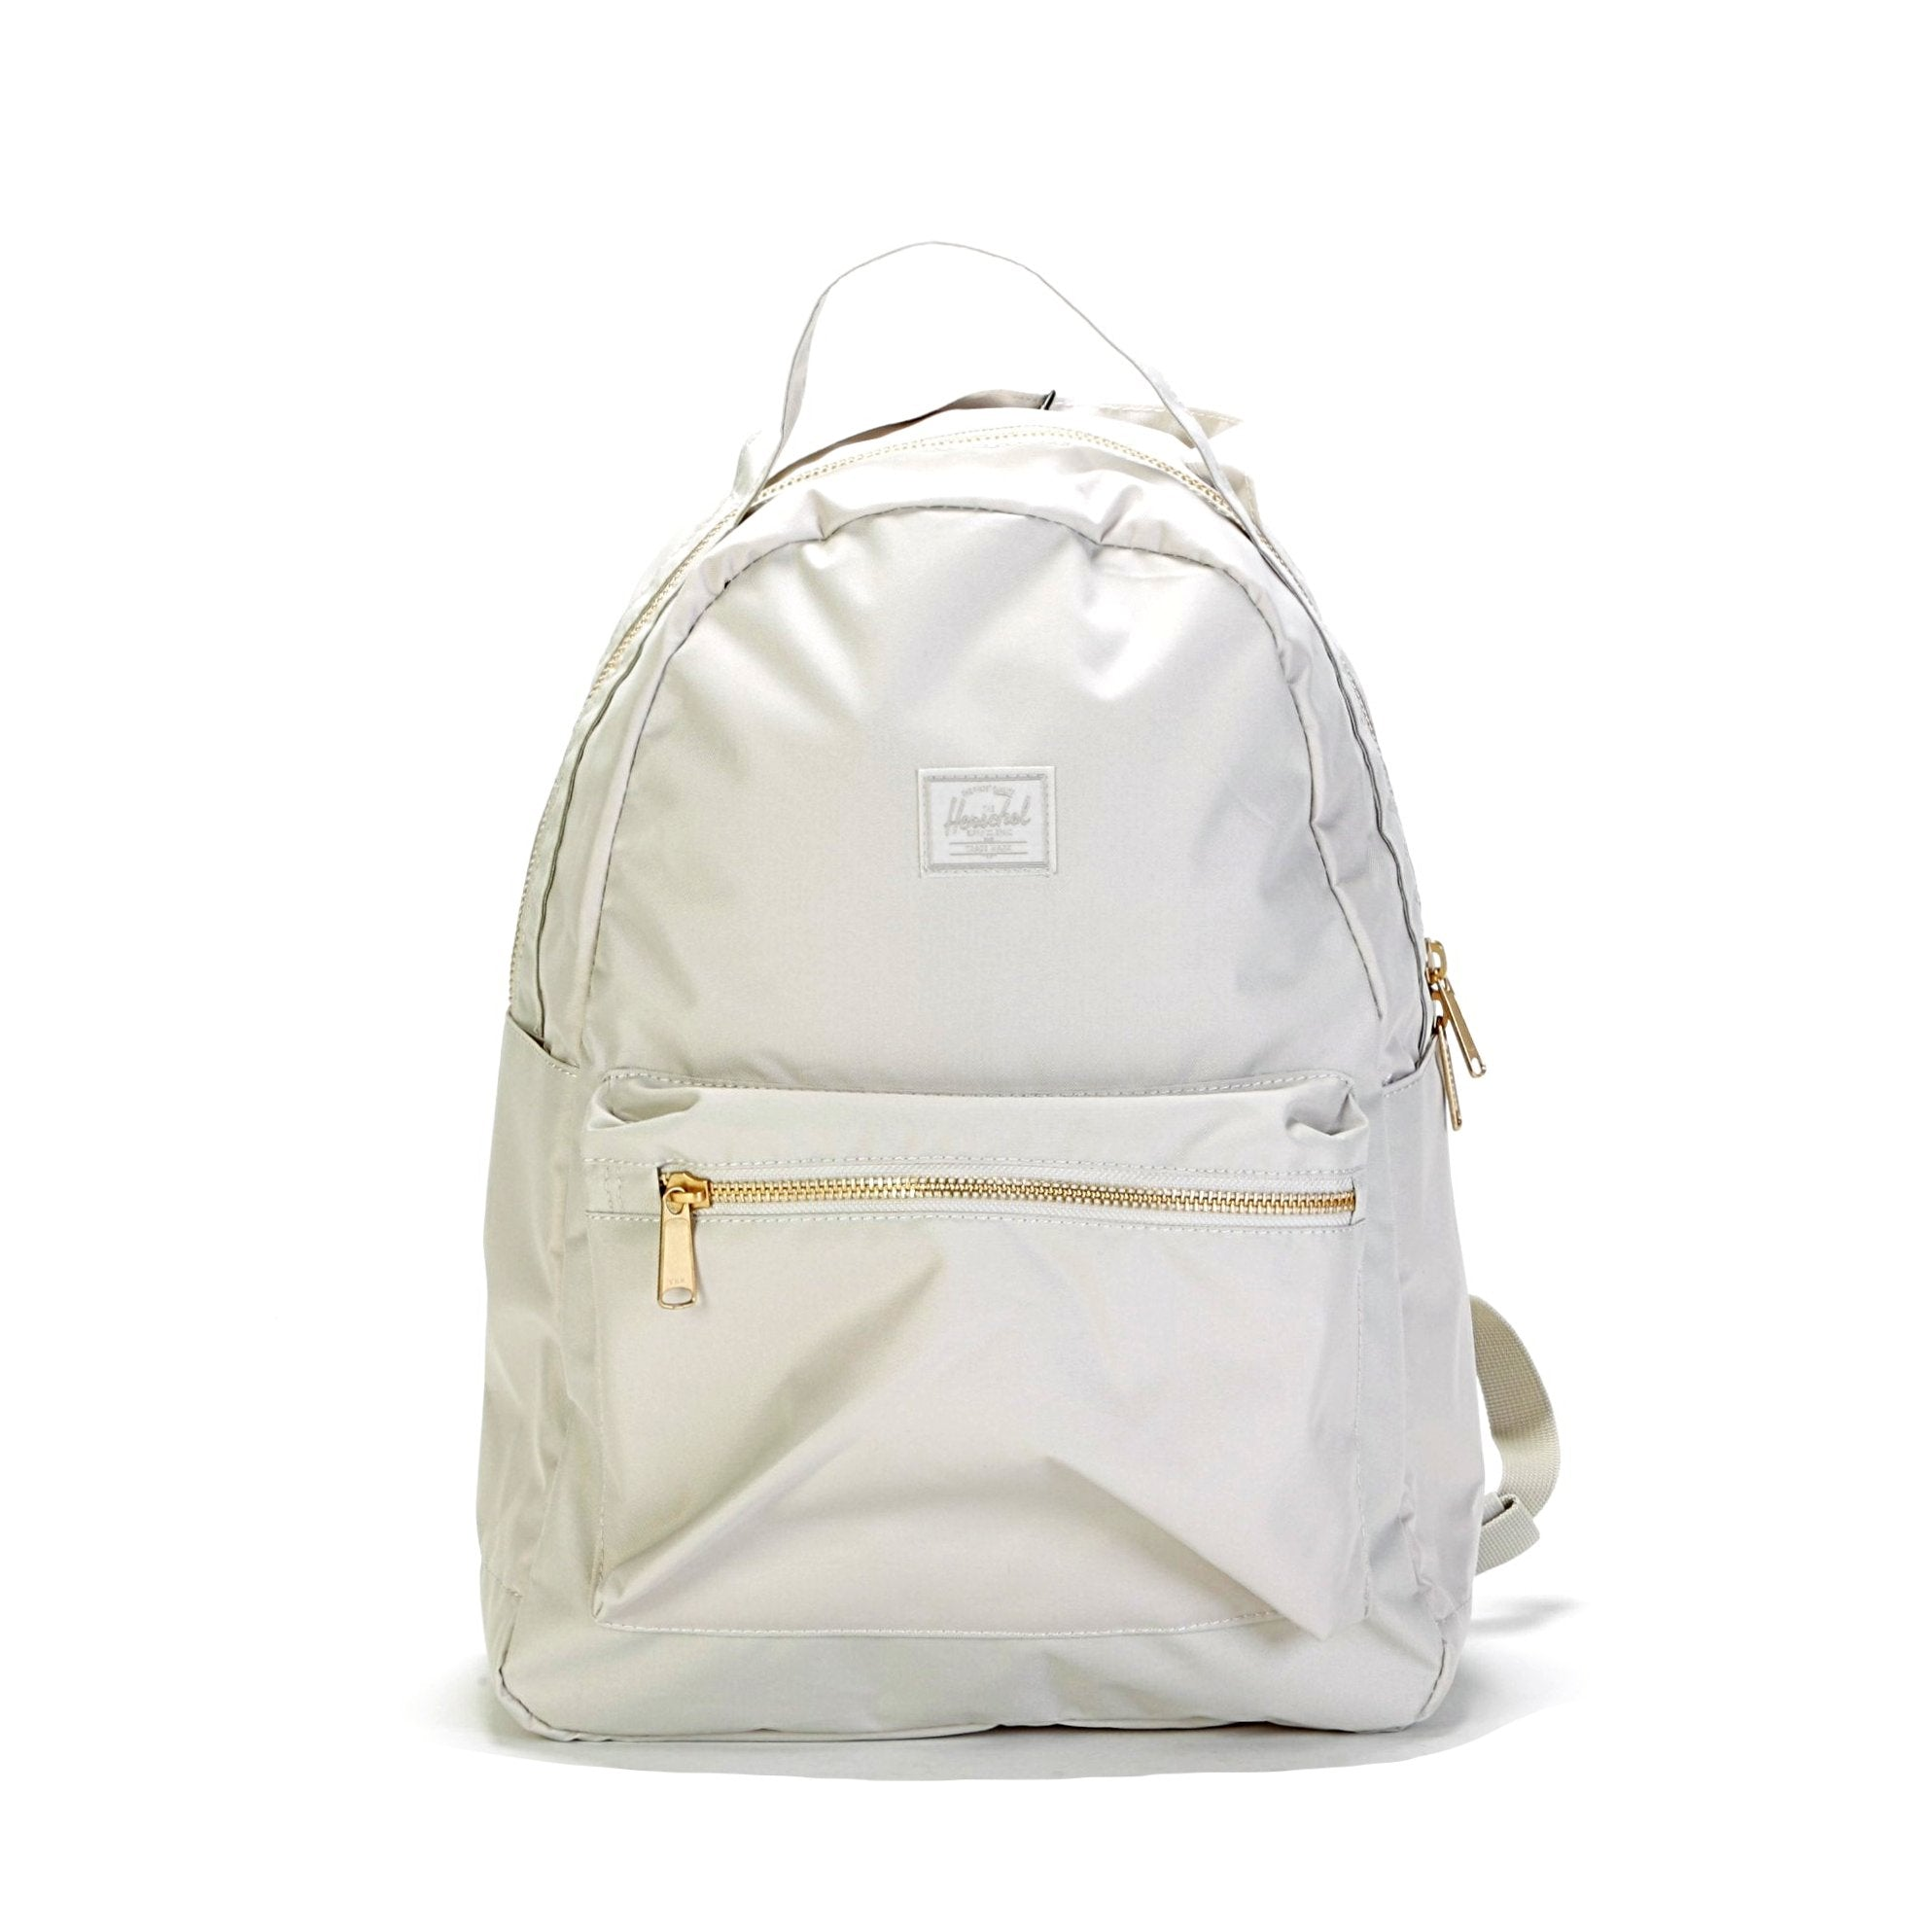 a88ddcca4a2 Back To Herschel Supply Co · ← Previous Product · Next Product →